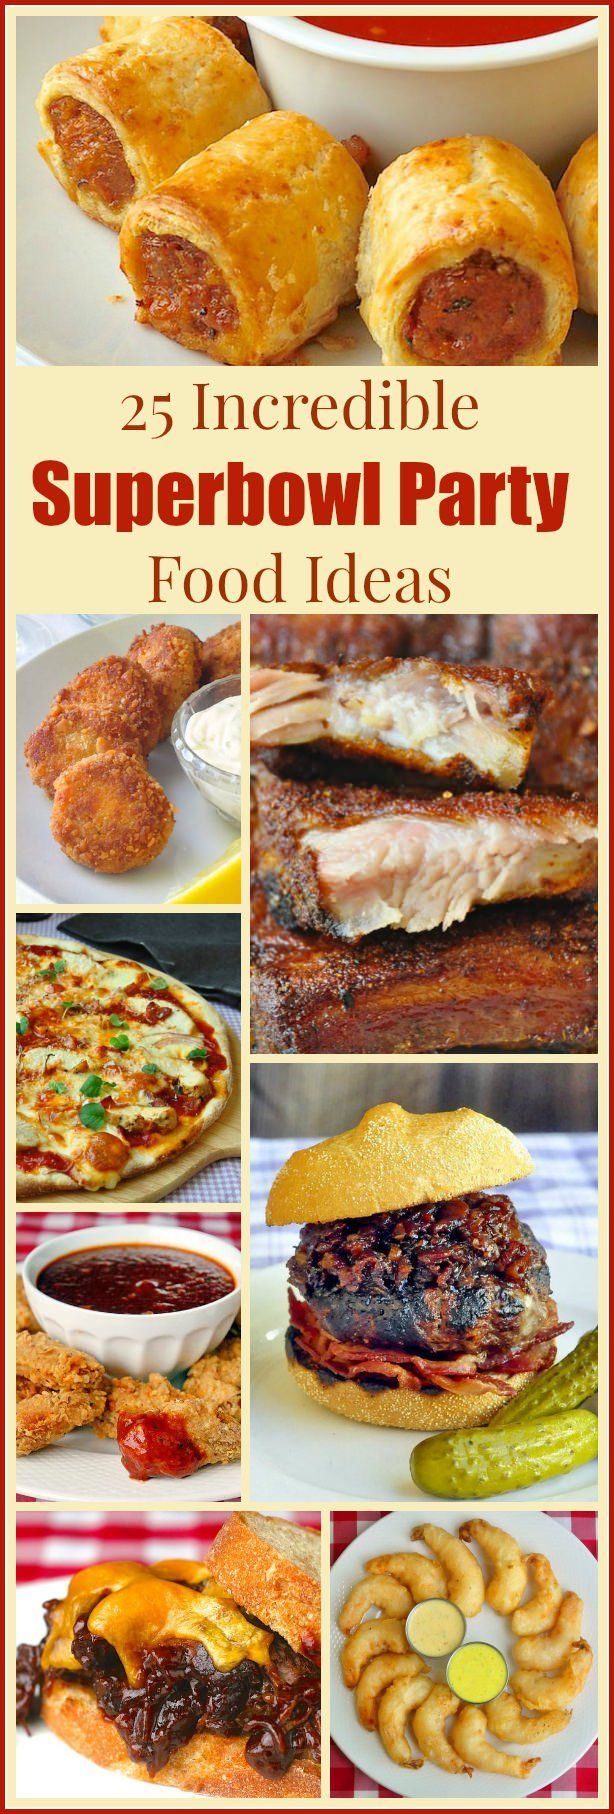 Rock Recipes Best Super Bowl  Party Food Ideas - 25 of our best recipe ideas to make your Super Bowl Party a sure winner no matter who you're rooting for.